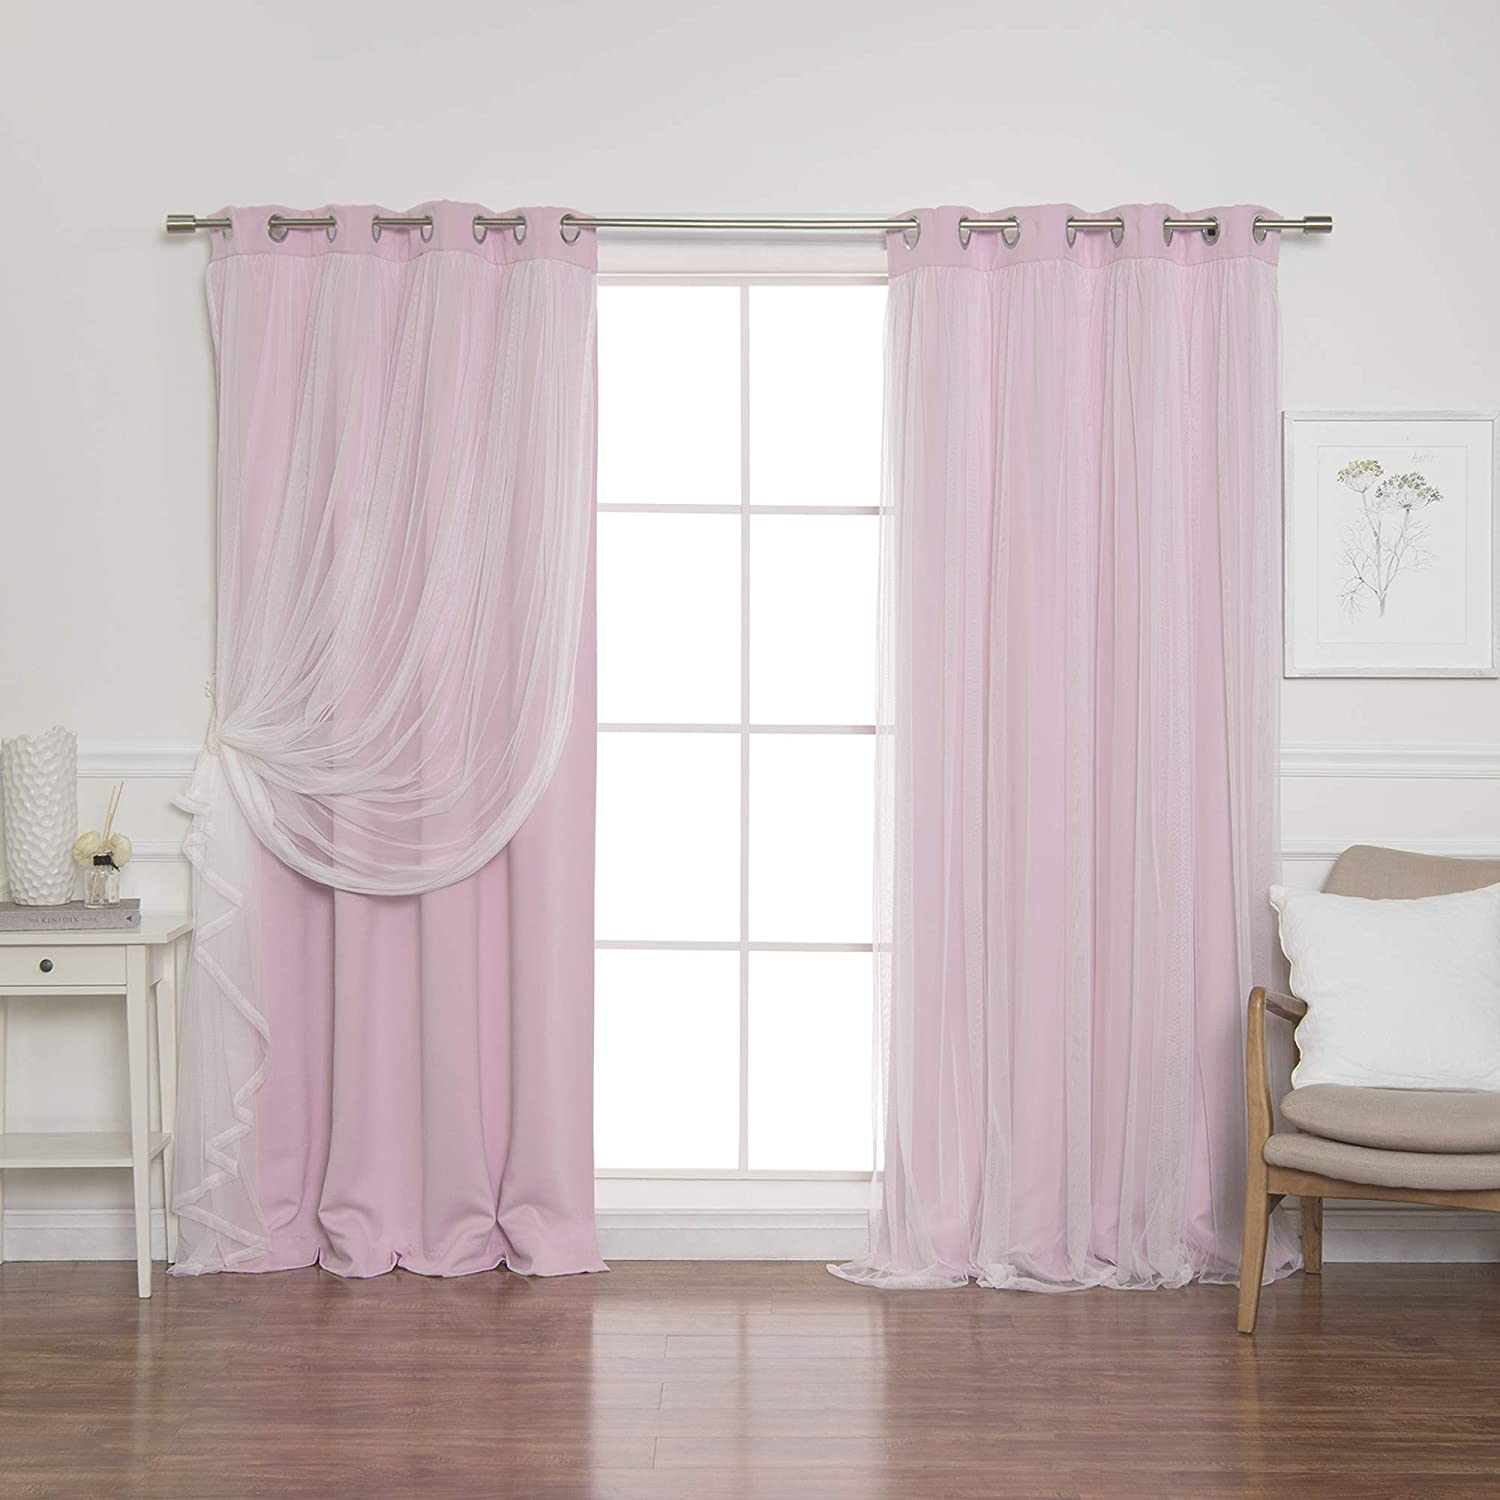 """Best Home Fashion Lace Tulle Overlay Thermal Insulated Solid Blackouts - Stainless Steel Nickel Grommet Top - Newpink - 52"""" W x 84"""" L - (Set of 2 Panels)"""